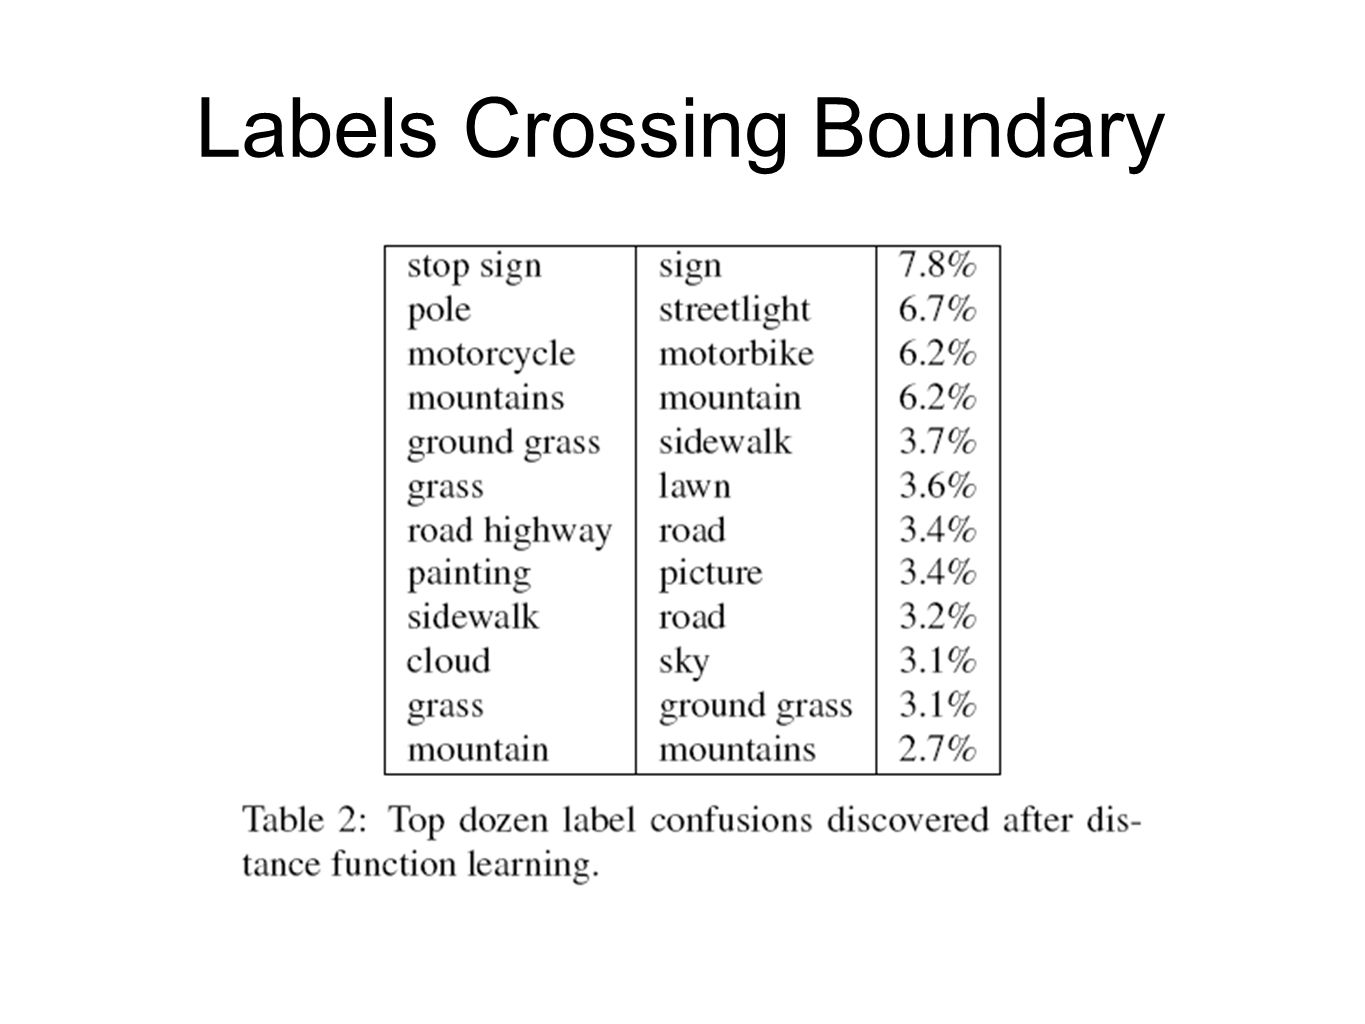 Labels Crossing Boundary